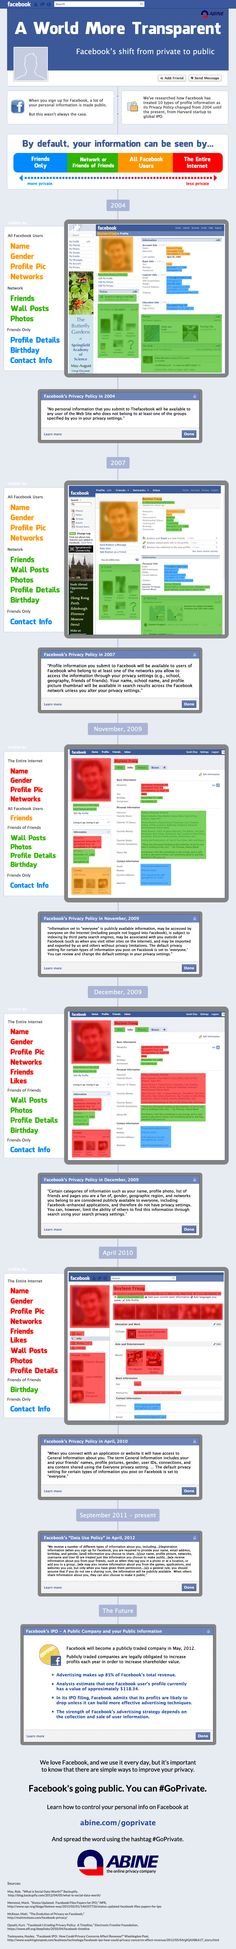 Infographic : Facebook, a world more Transparent from http://www.abine.com/blog/2012/infographic-facebooks-shift-from-private-to-public/